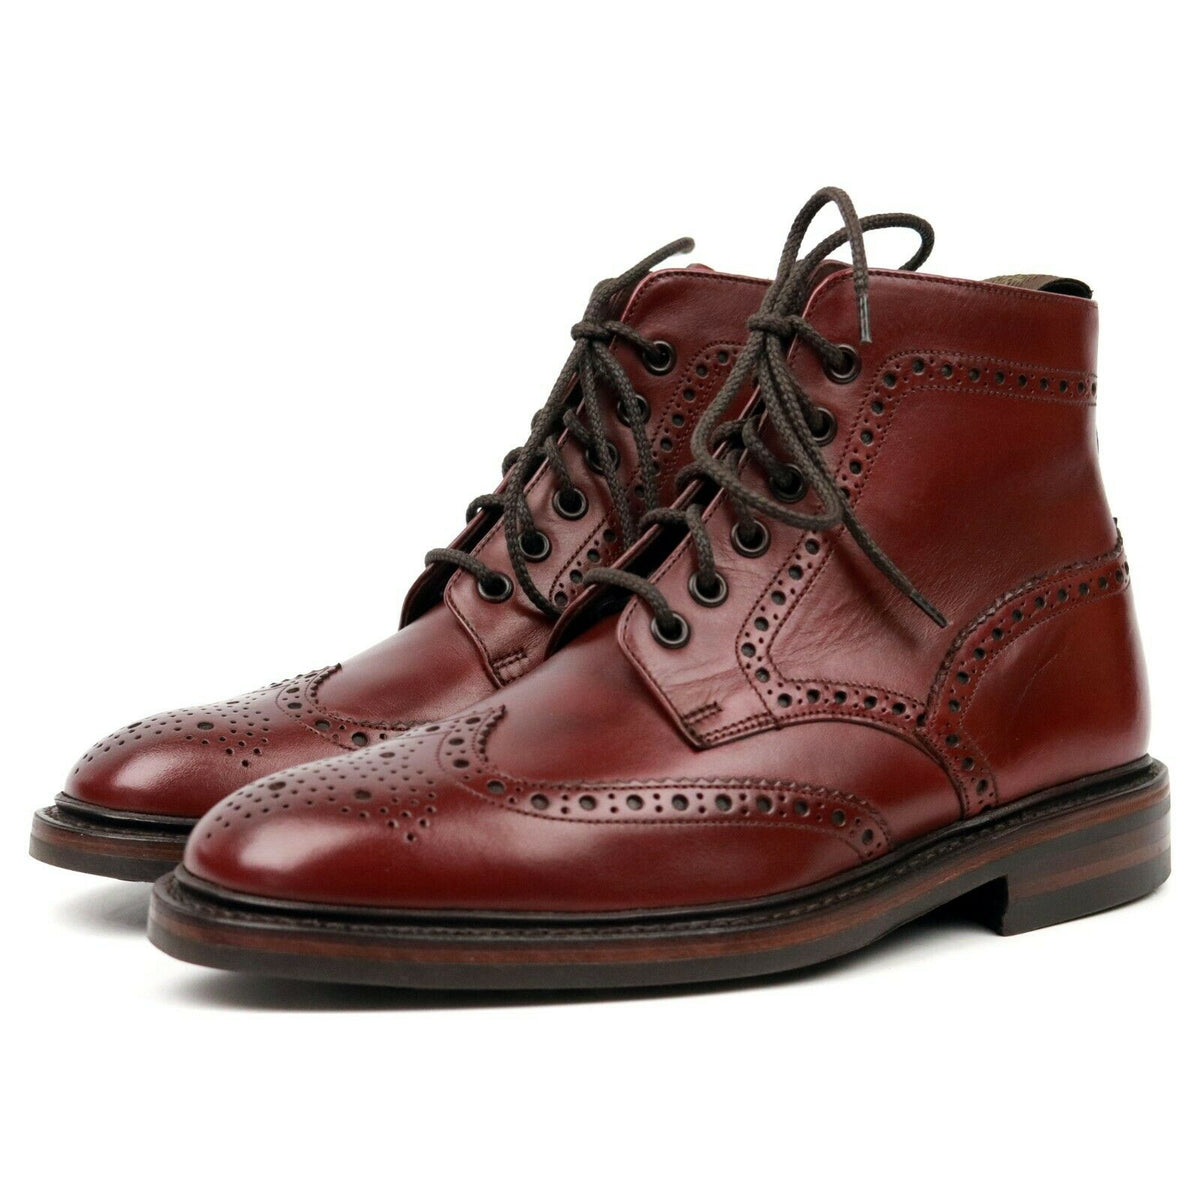 Loake 1880 'Burford' Burgundy Leather Brogue Boots UK 6 F